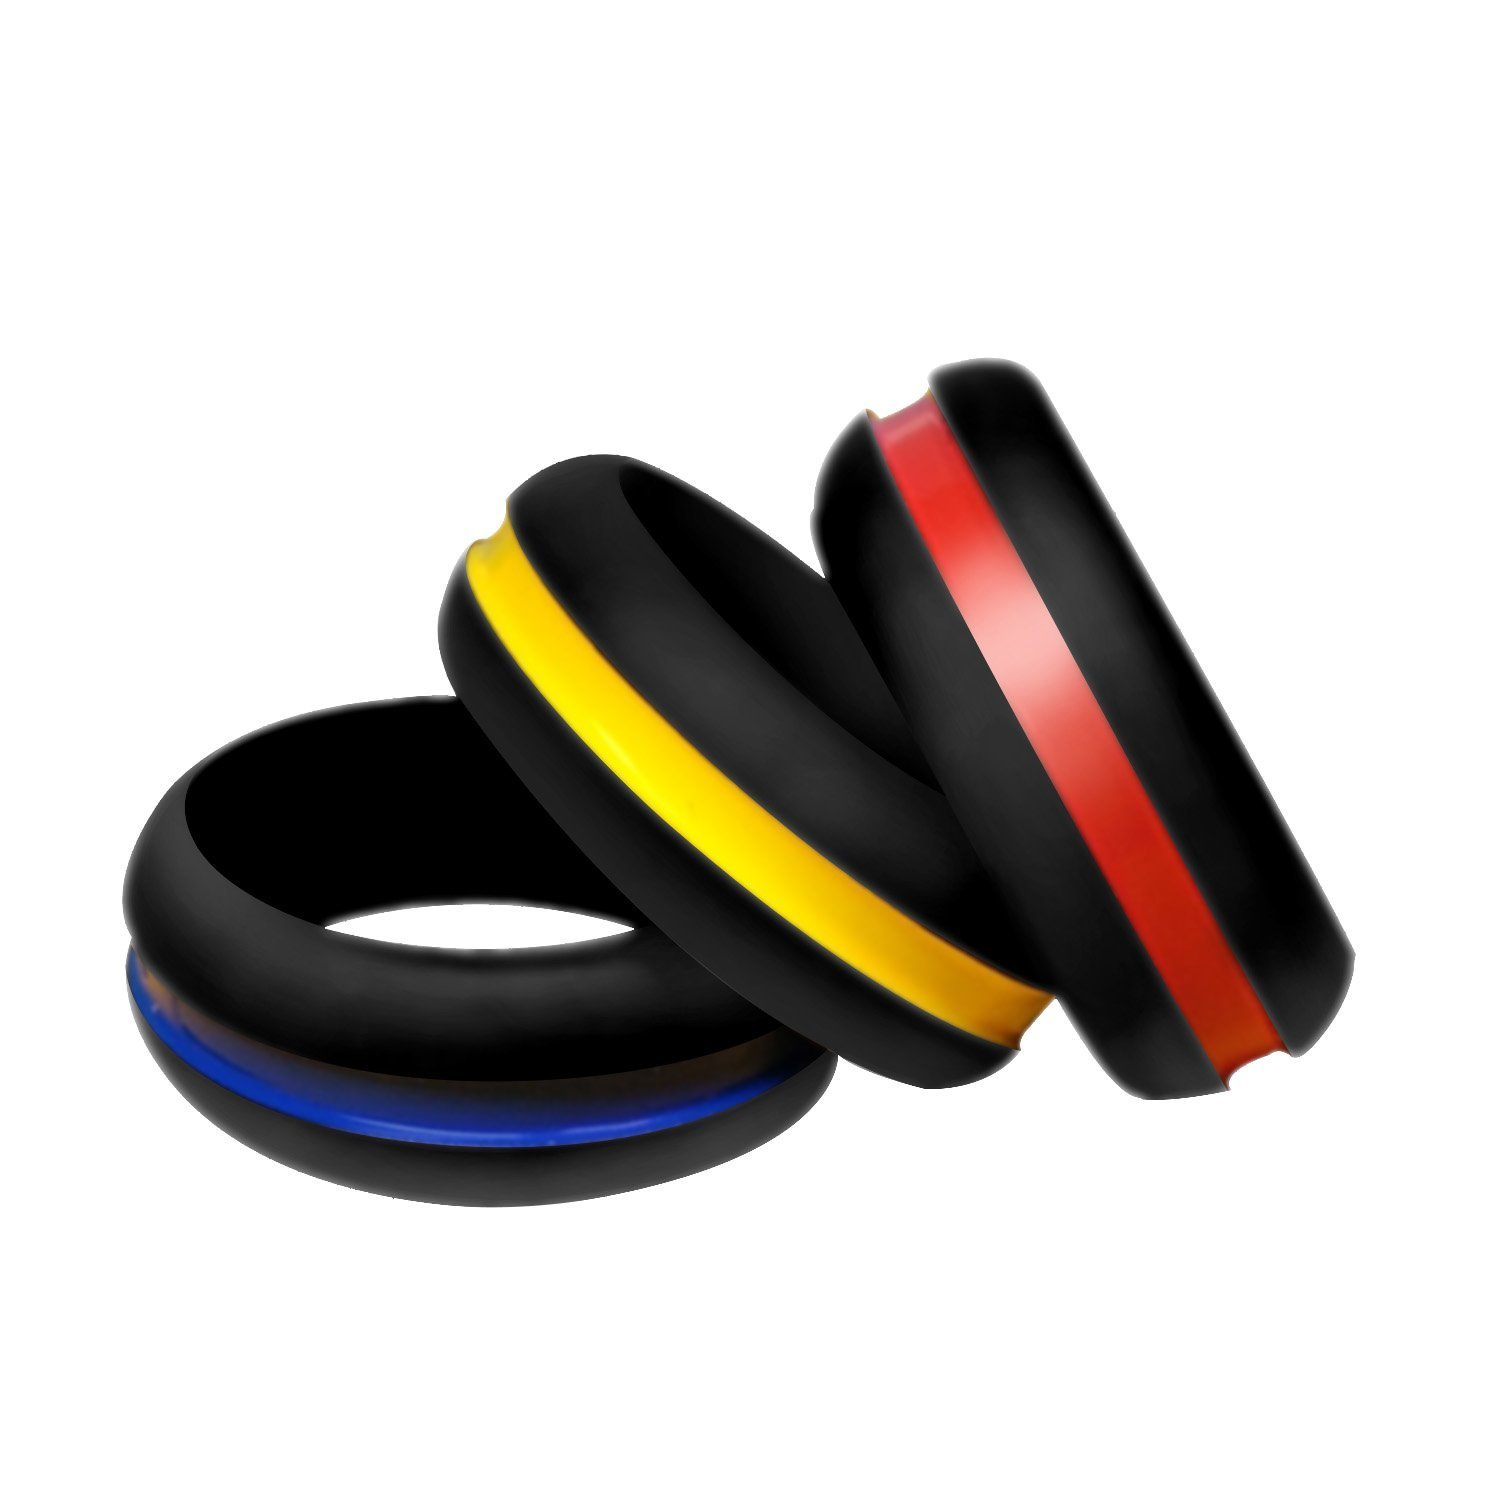 Rinspyre 3 Pack Silicone Wedding Rings Wedding Bands for Active Men and Women, Fitness, Engineers, Sports, Weightlifting Comfortable Fit, Skin Safe, Non-Toxic Soft Rubber Band RSP-0302